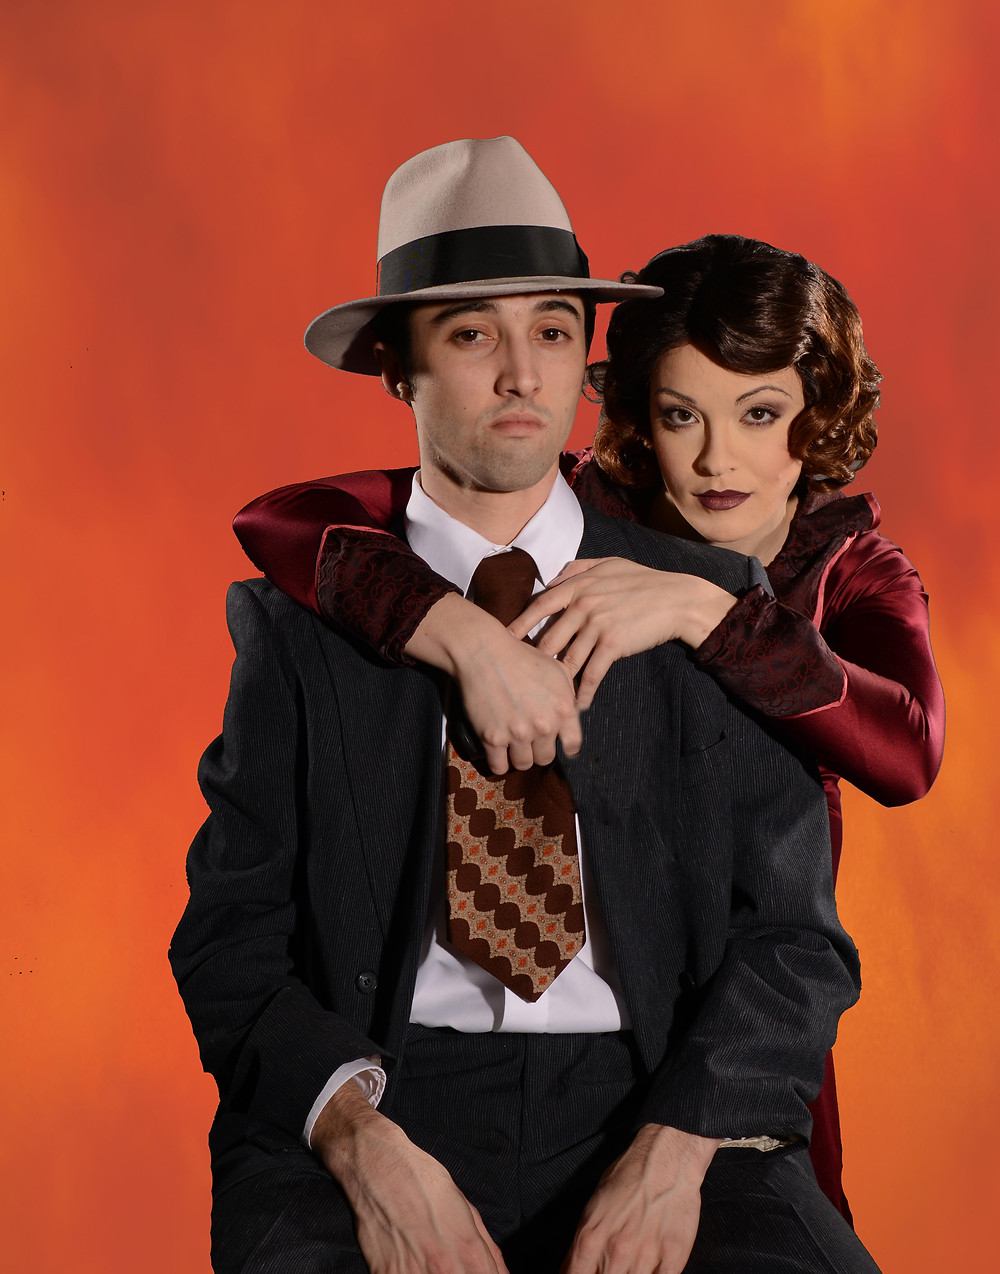 Bonnie & Clyde: Before the Bullets